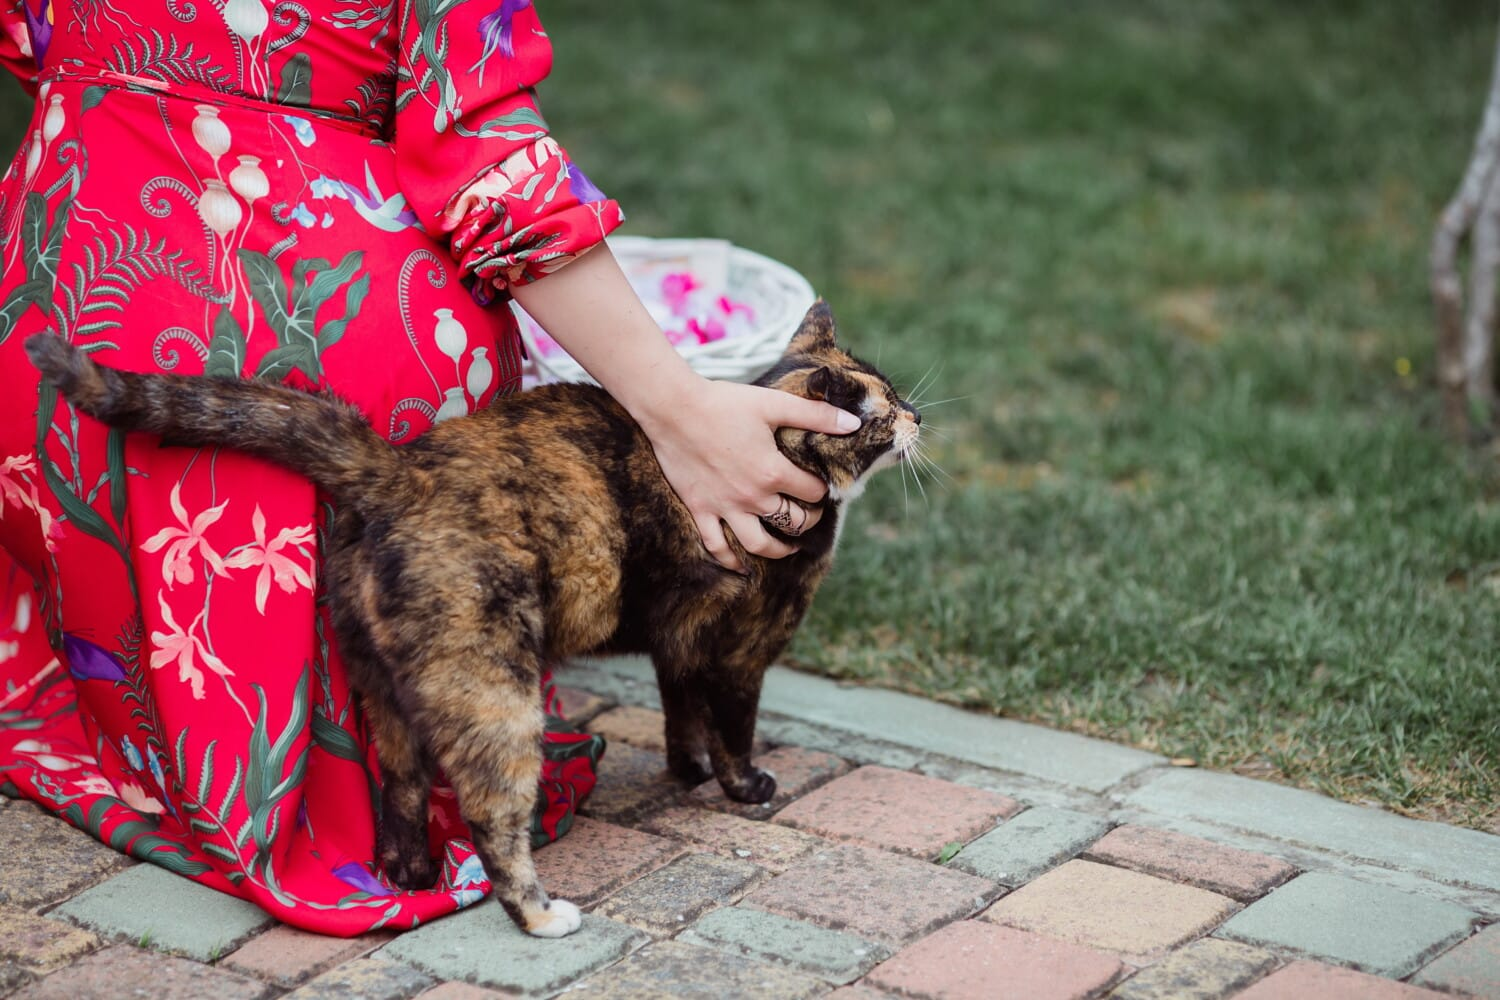 domestic cat, pet, woman, hand, cute, animal, cat, young, portrait, puppy